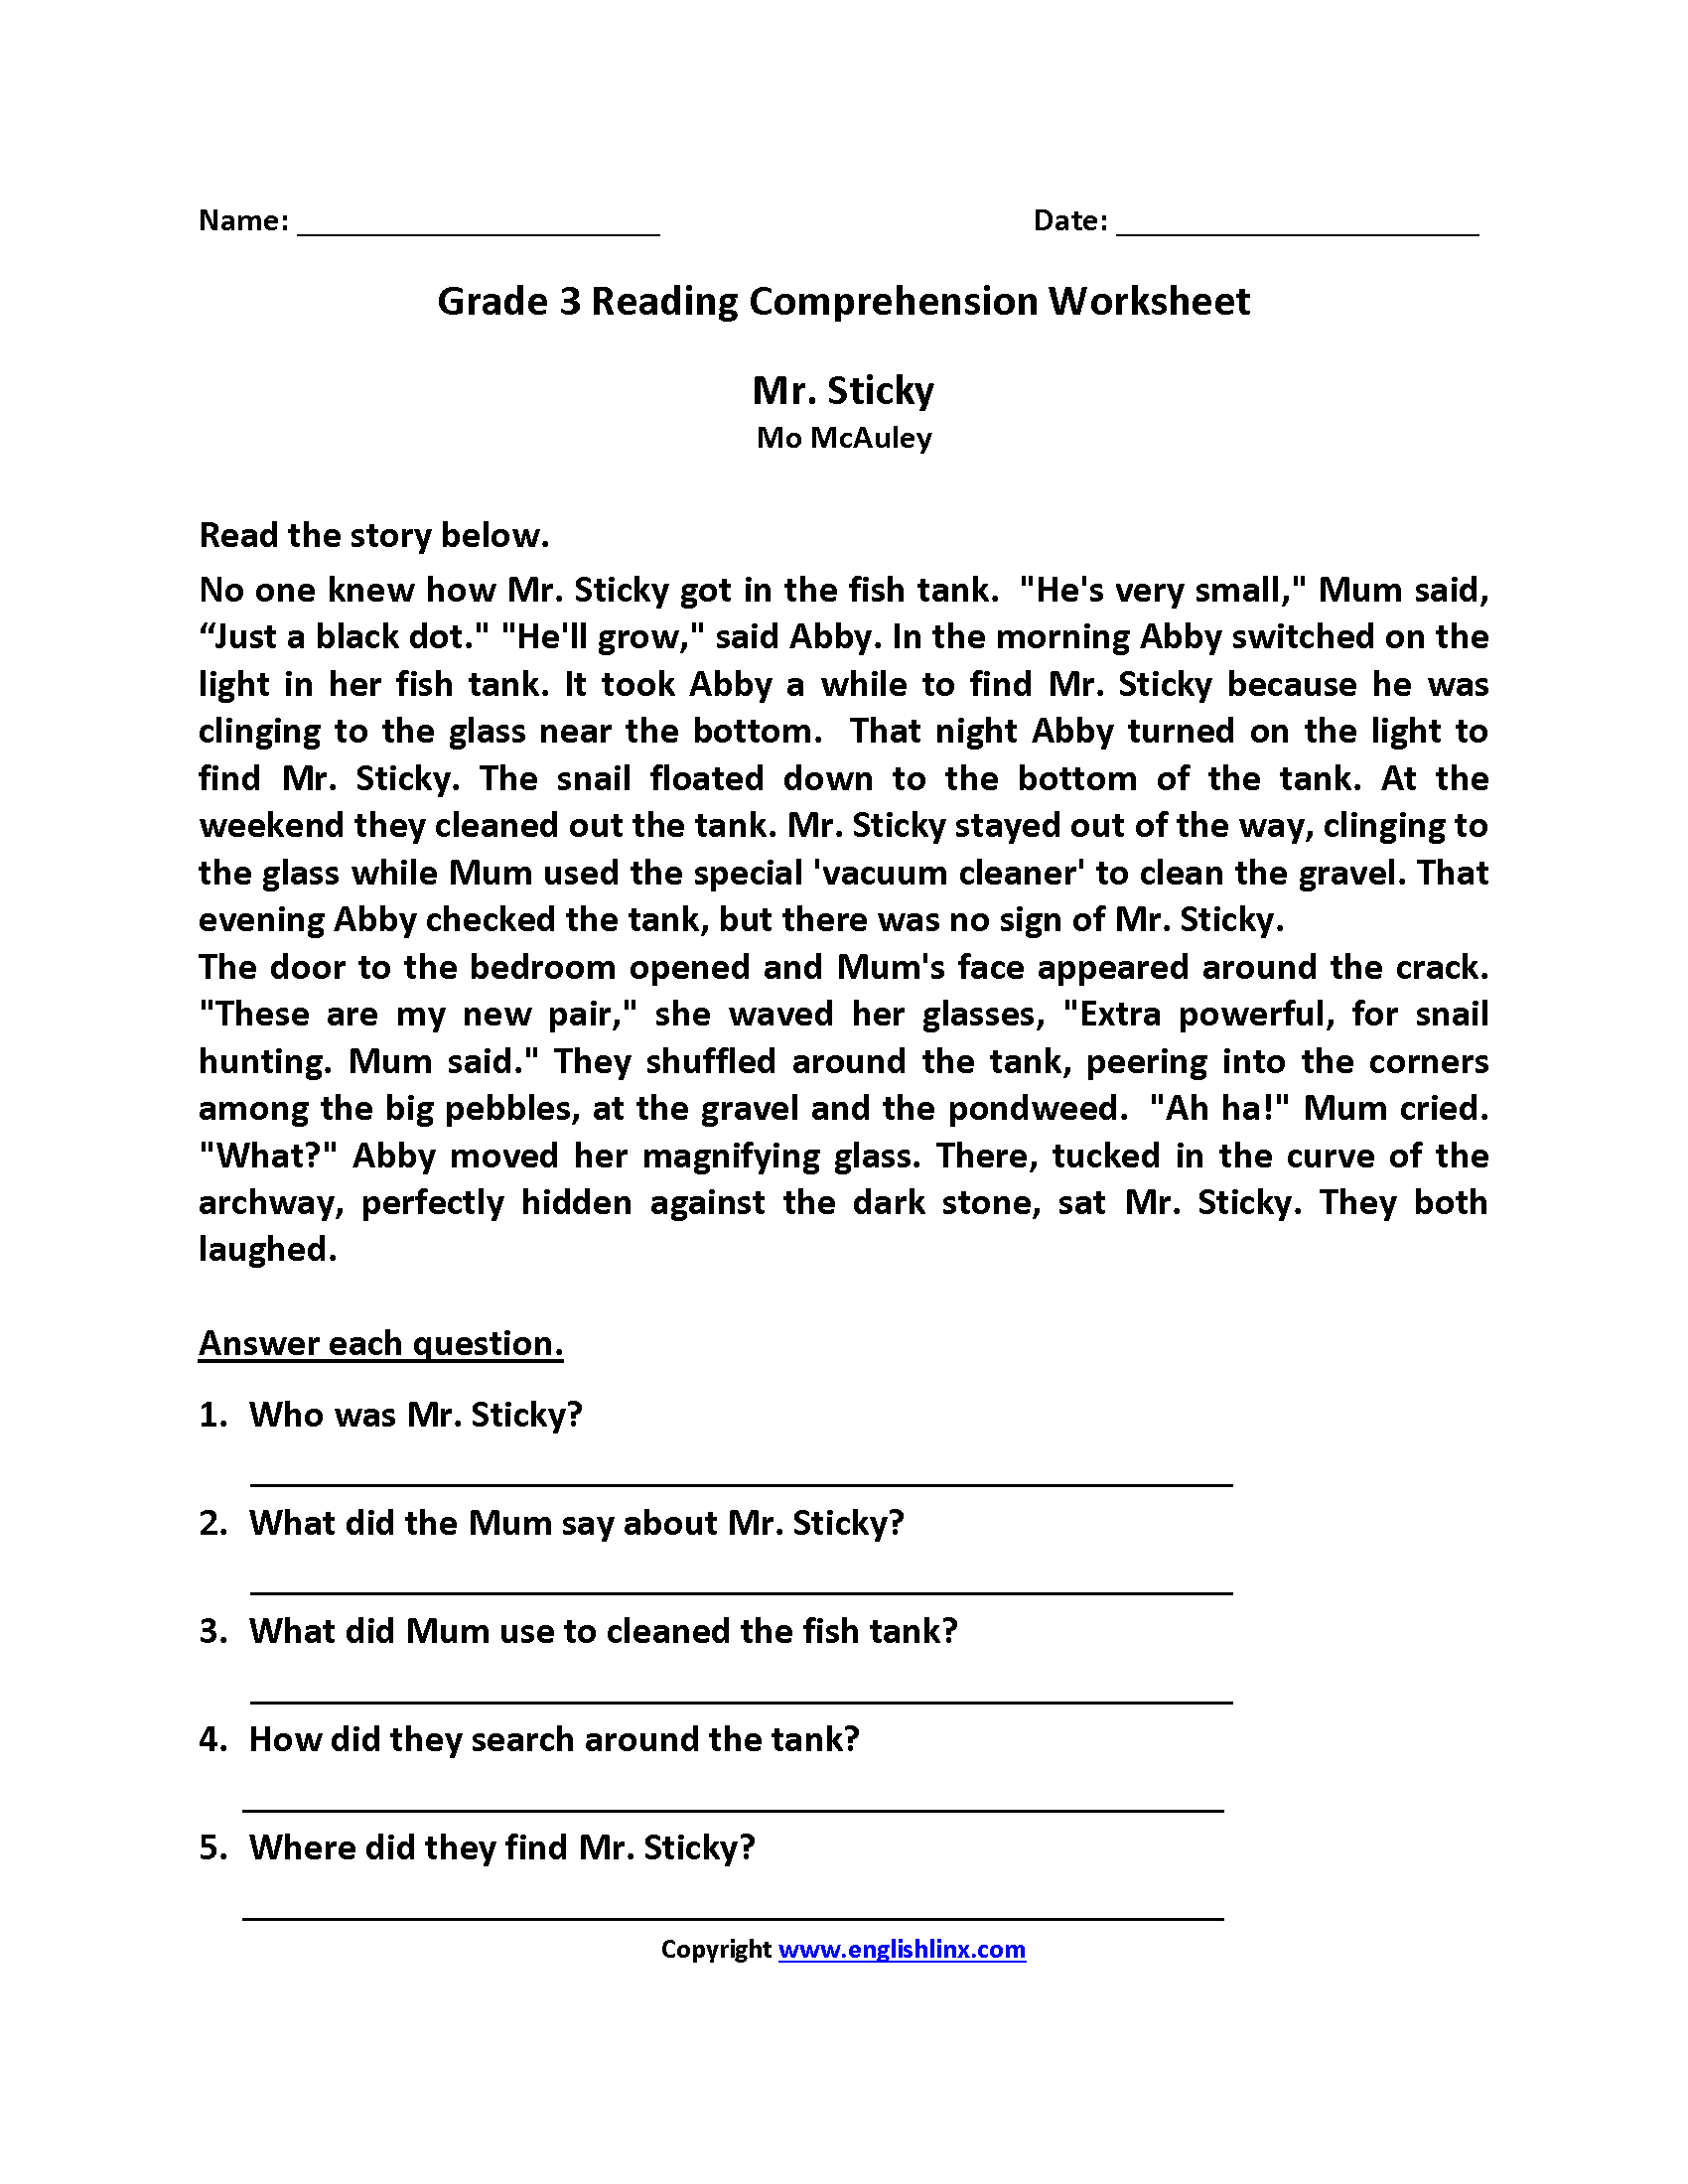 Mr Sticky Third Grade Reading Worksheets With Images